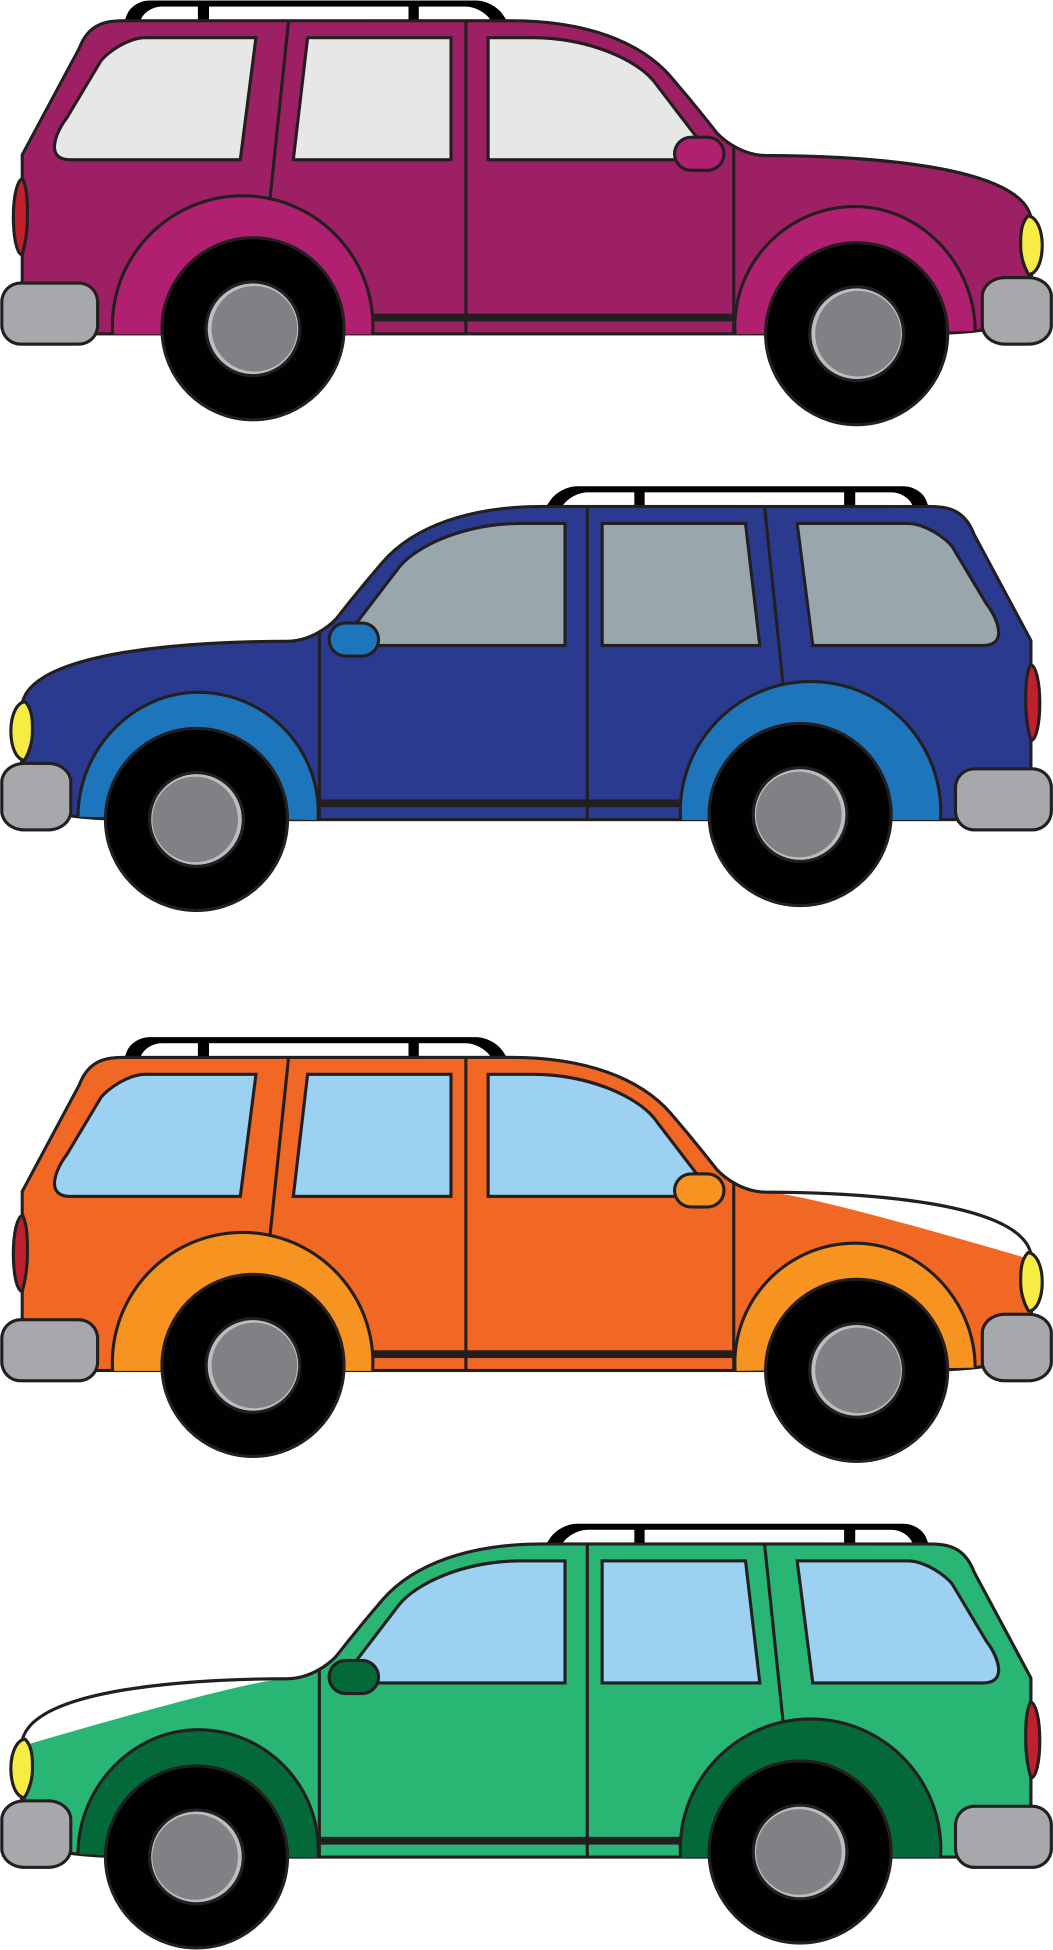 Car image in clipart format free library Vehicles Clipart | Free download best Vehicles Clipart on ClipArtMag.com free library